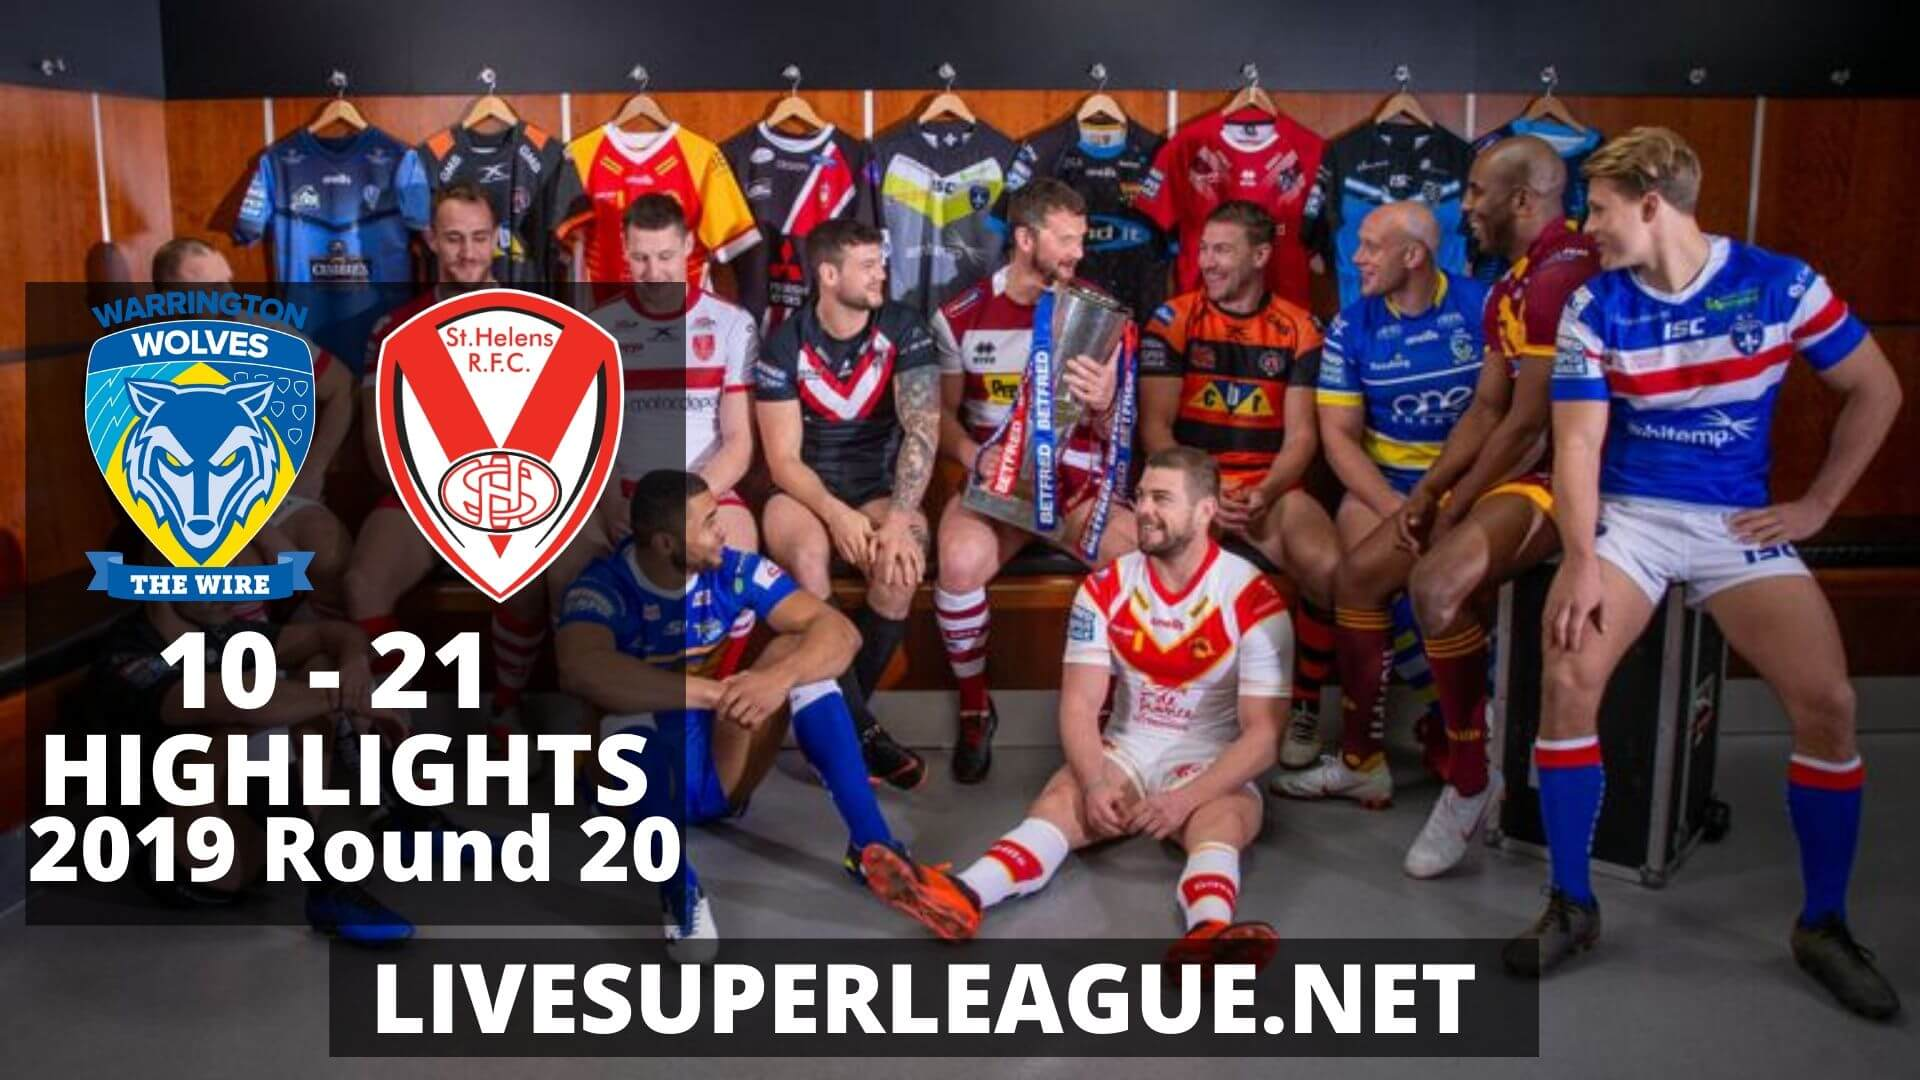 Warrington Wolves Vs St Helens Highlights 2019 Round 20